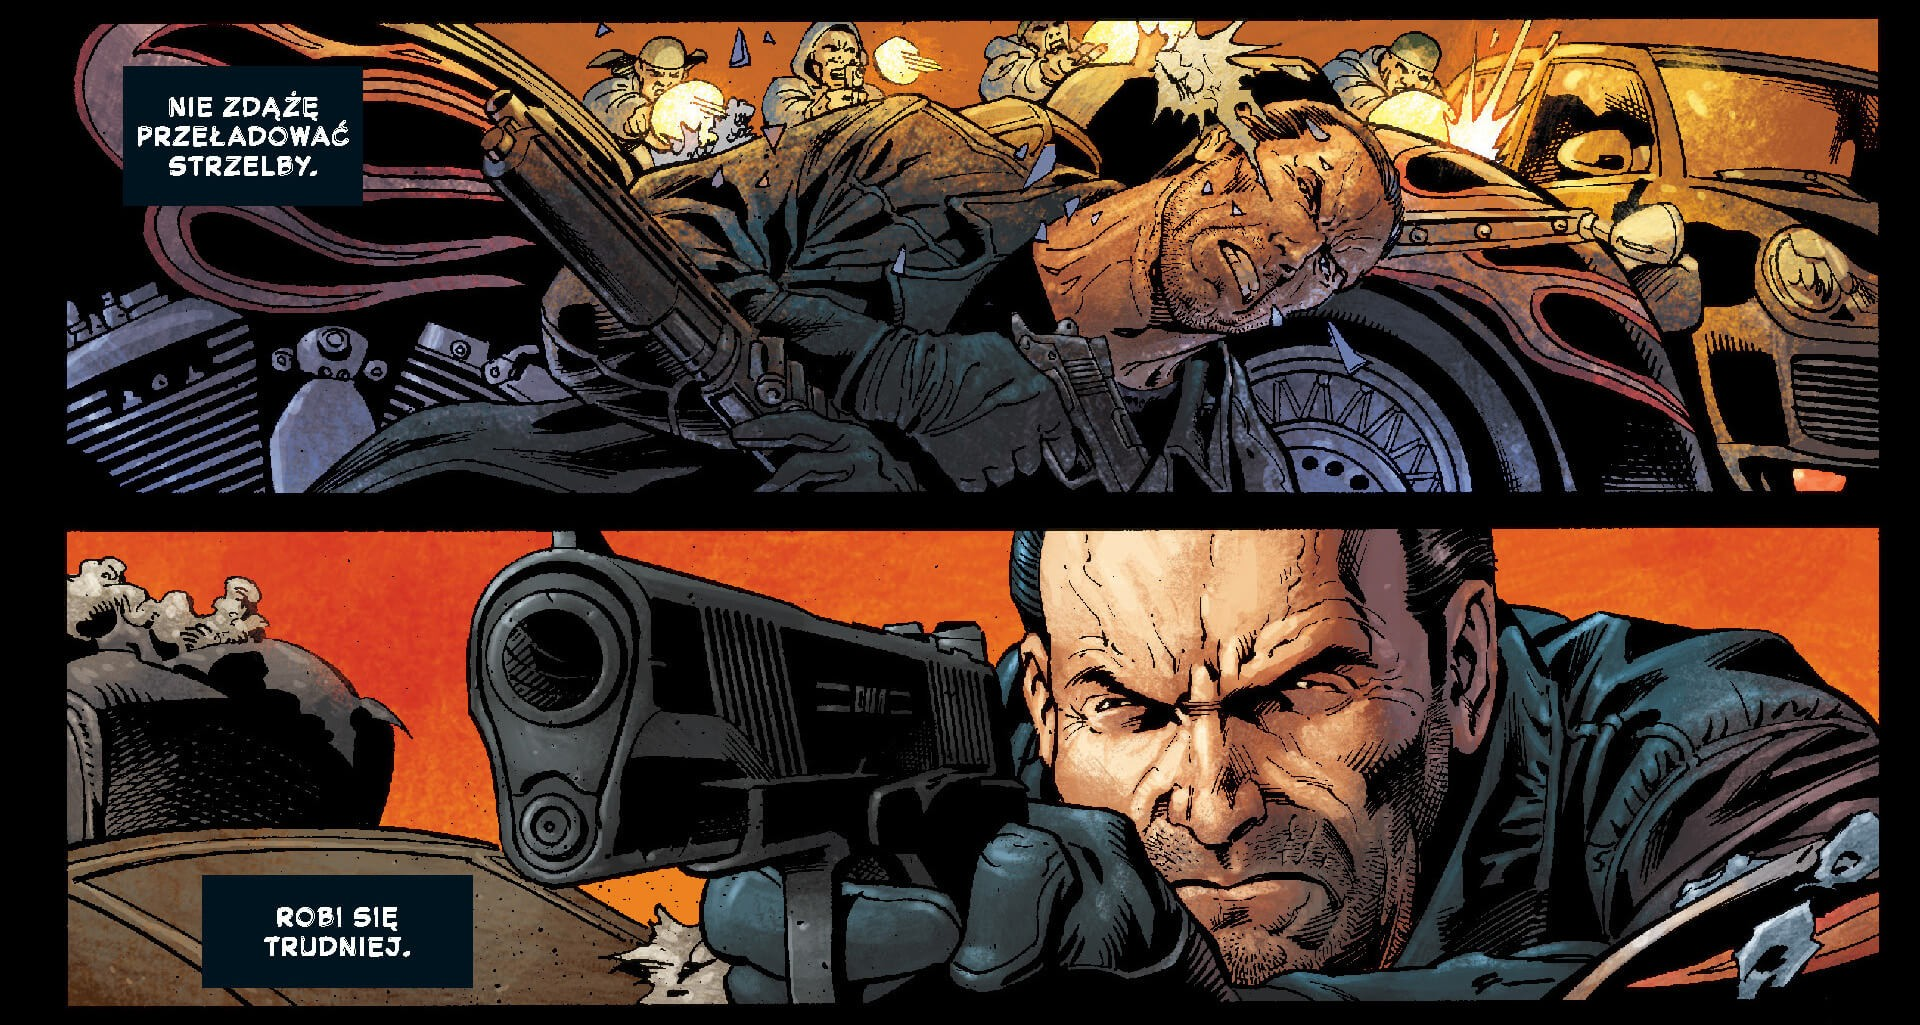 punisher_t2_plansza_01.jpg